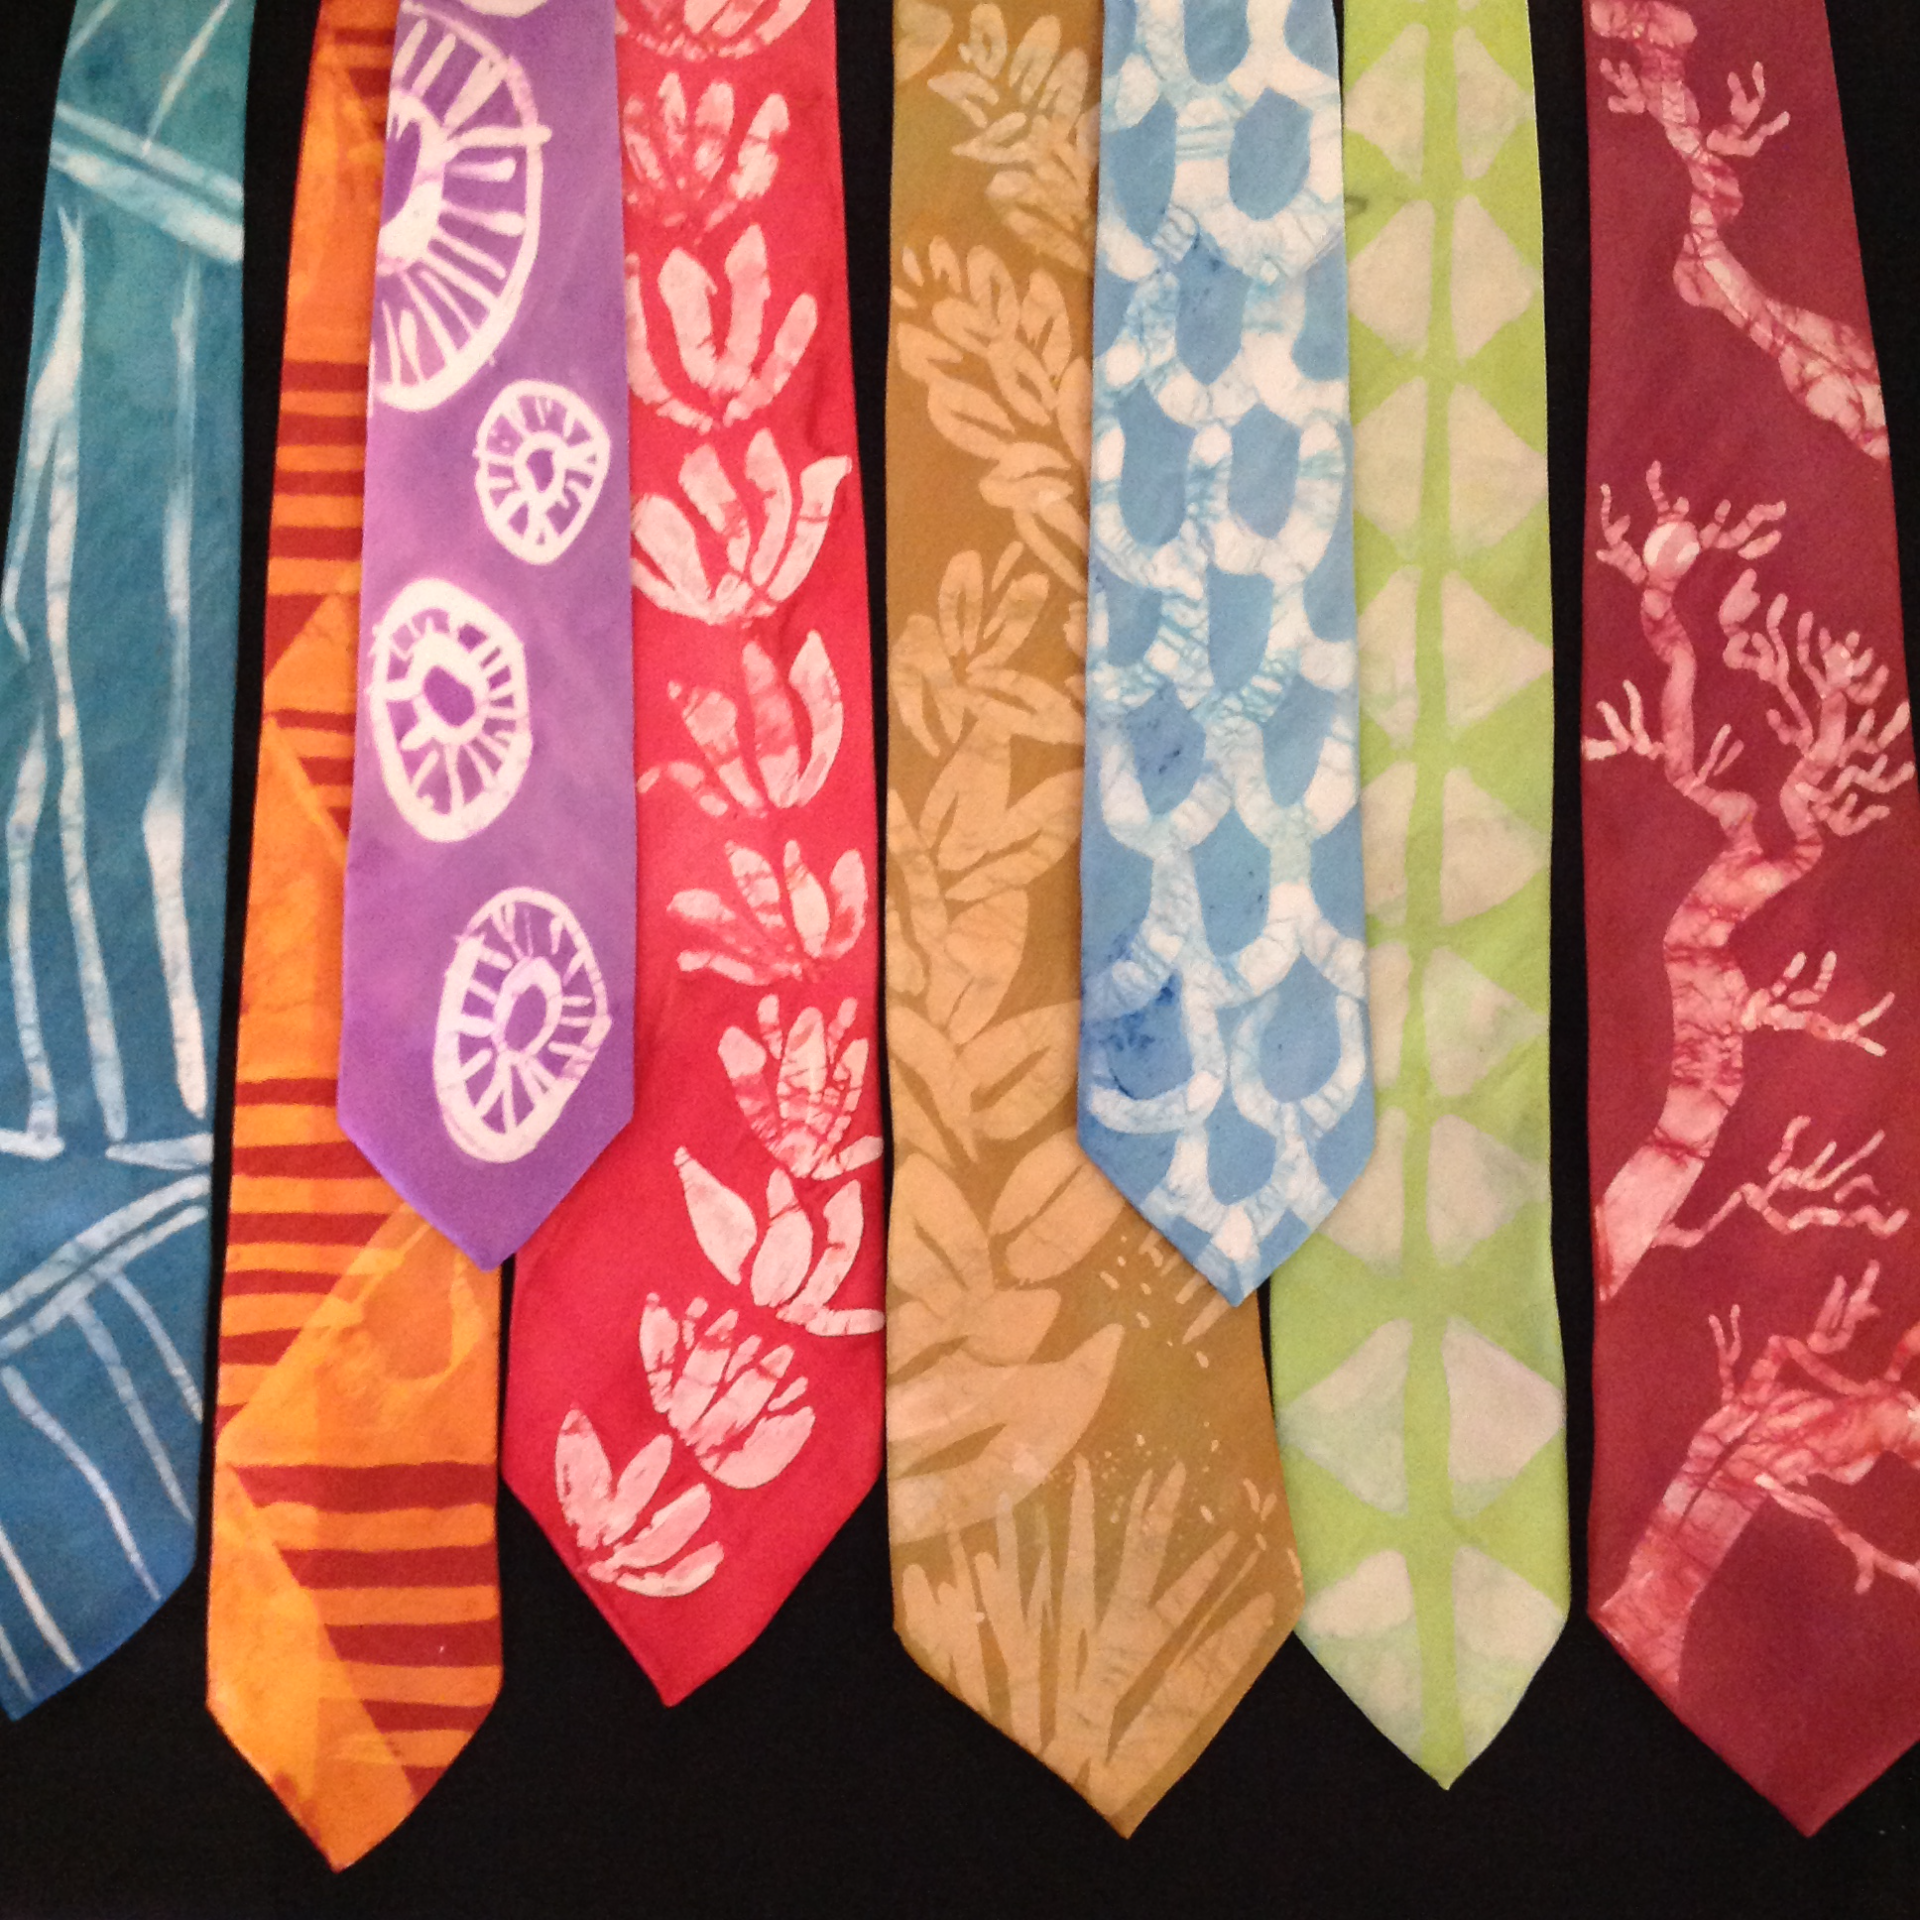 Silk Ties Image_edited.jpg